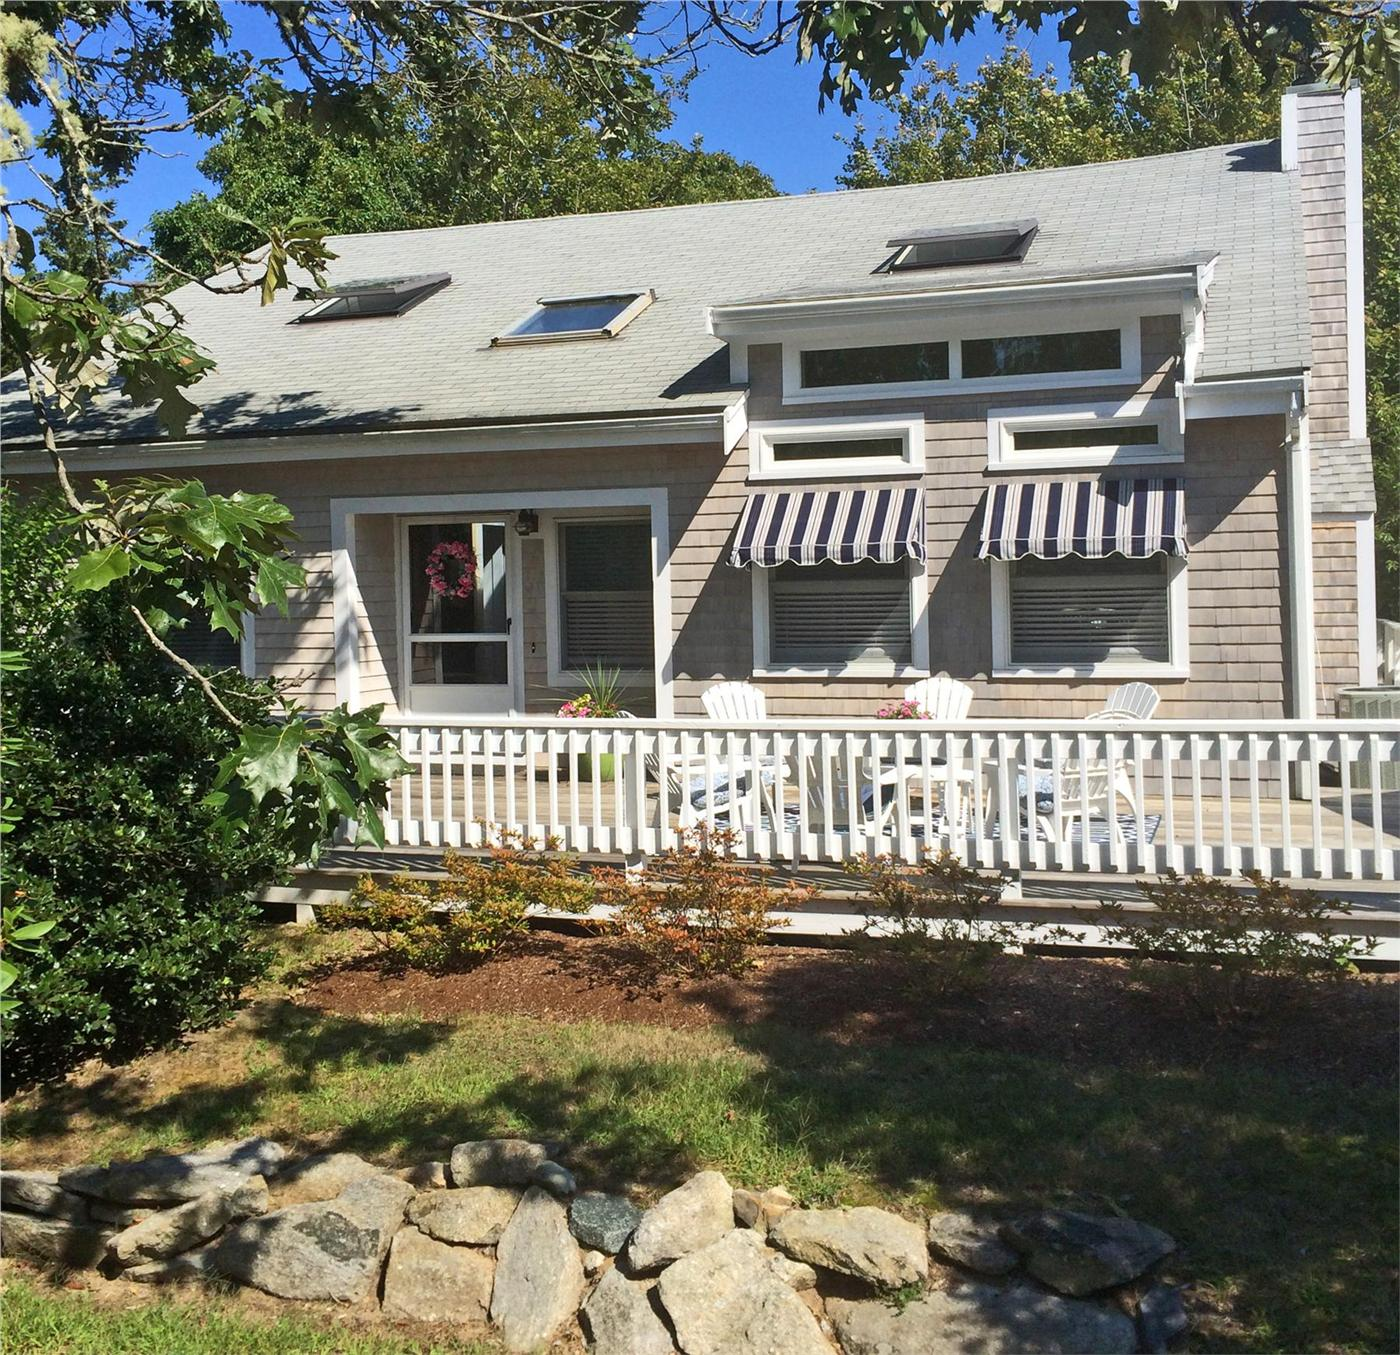 Harwich Vacation Rental Home In Cape Cod MA 02671, Belmont